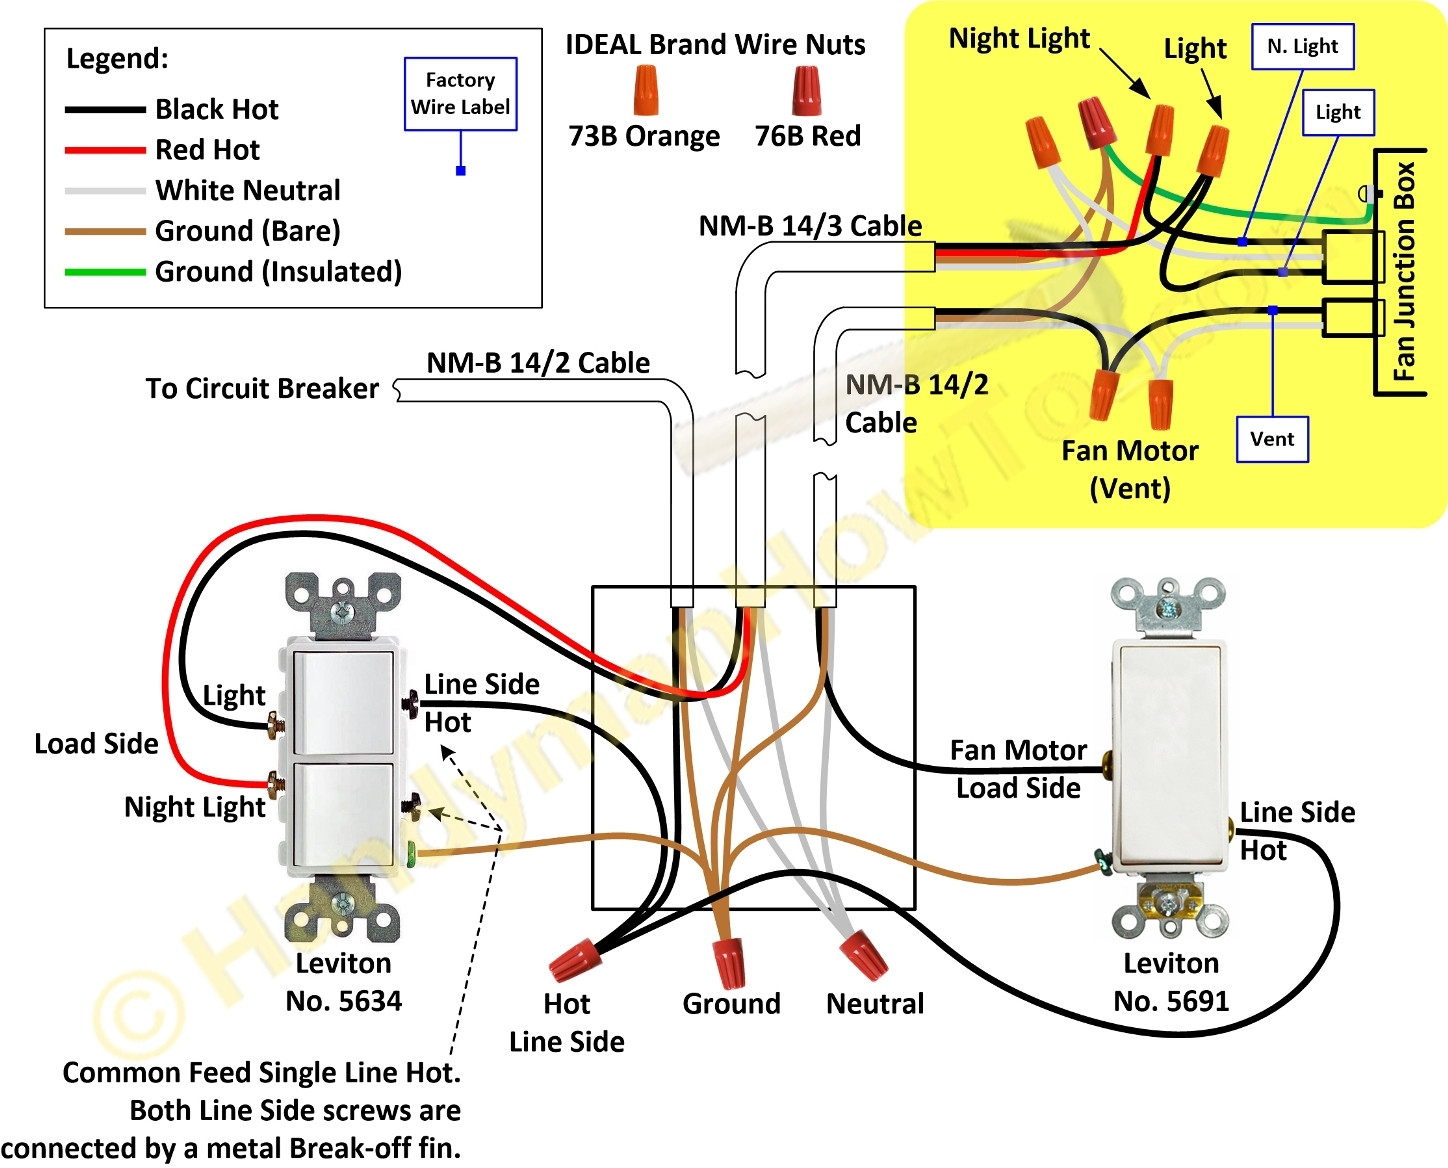 wiring diagram for meyer snow plow Download-wiring diagram for meyer snow plow Download Meyer Snow Plow Wiring Diagram E47 3 Bright DOWNLOAD Wiring Diagram 14-c